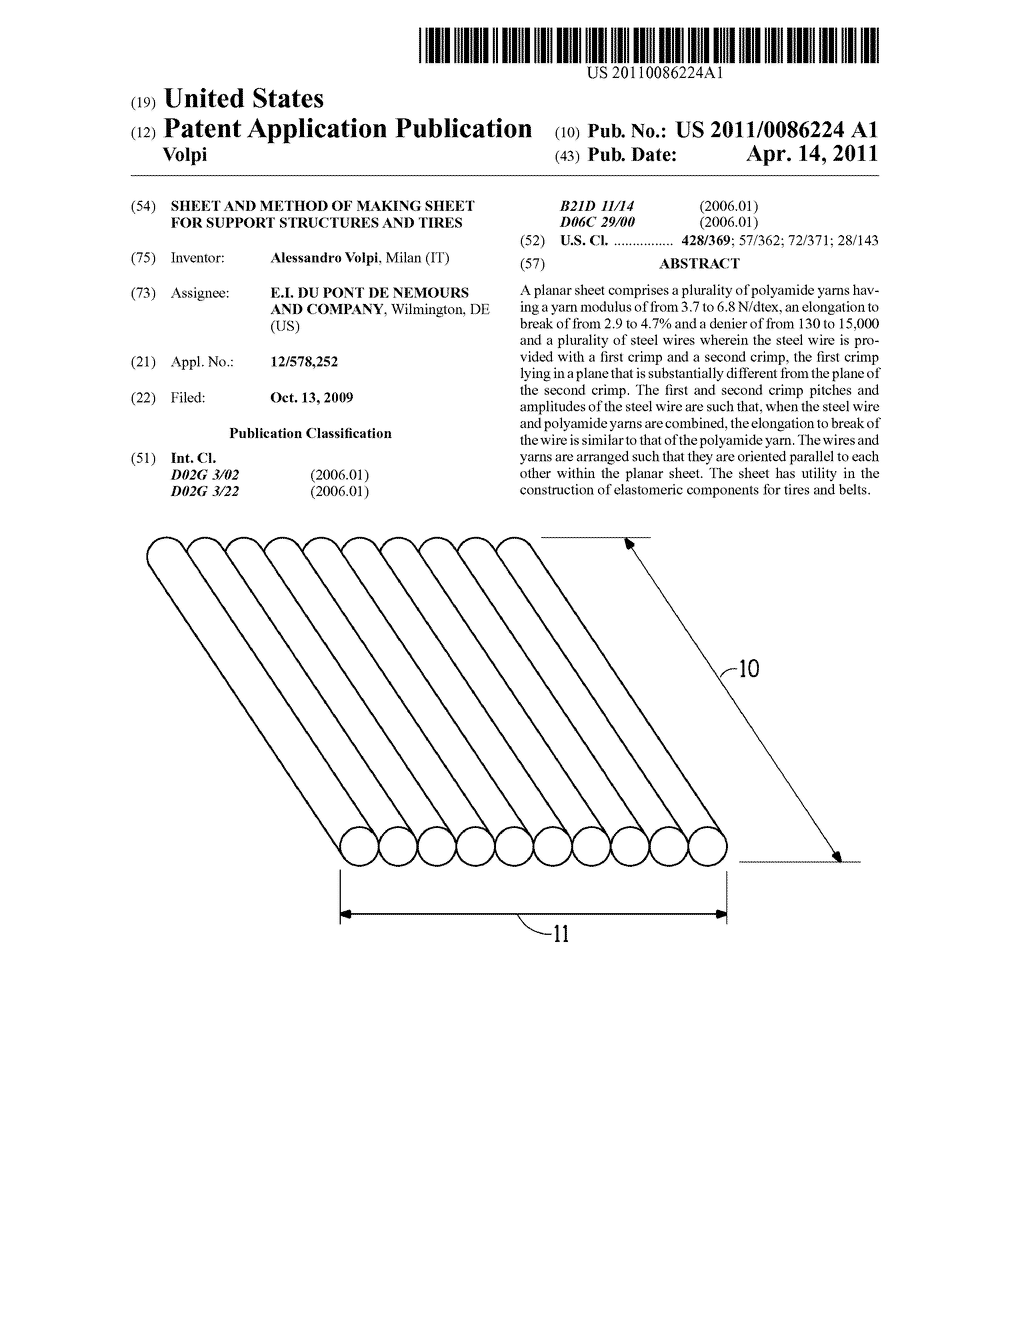 Sheet and Method of Making Sheet for Support Structures and Tires - diagram, schematic, and image 01